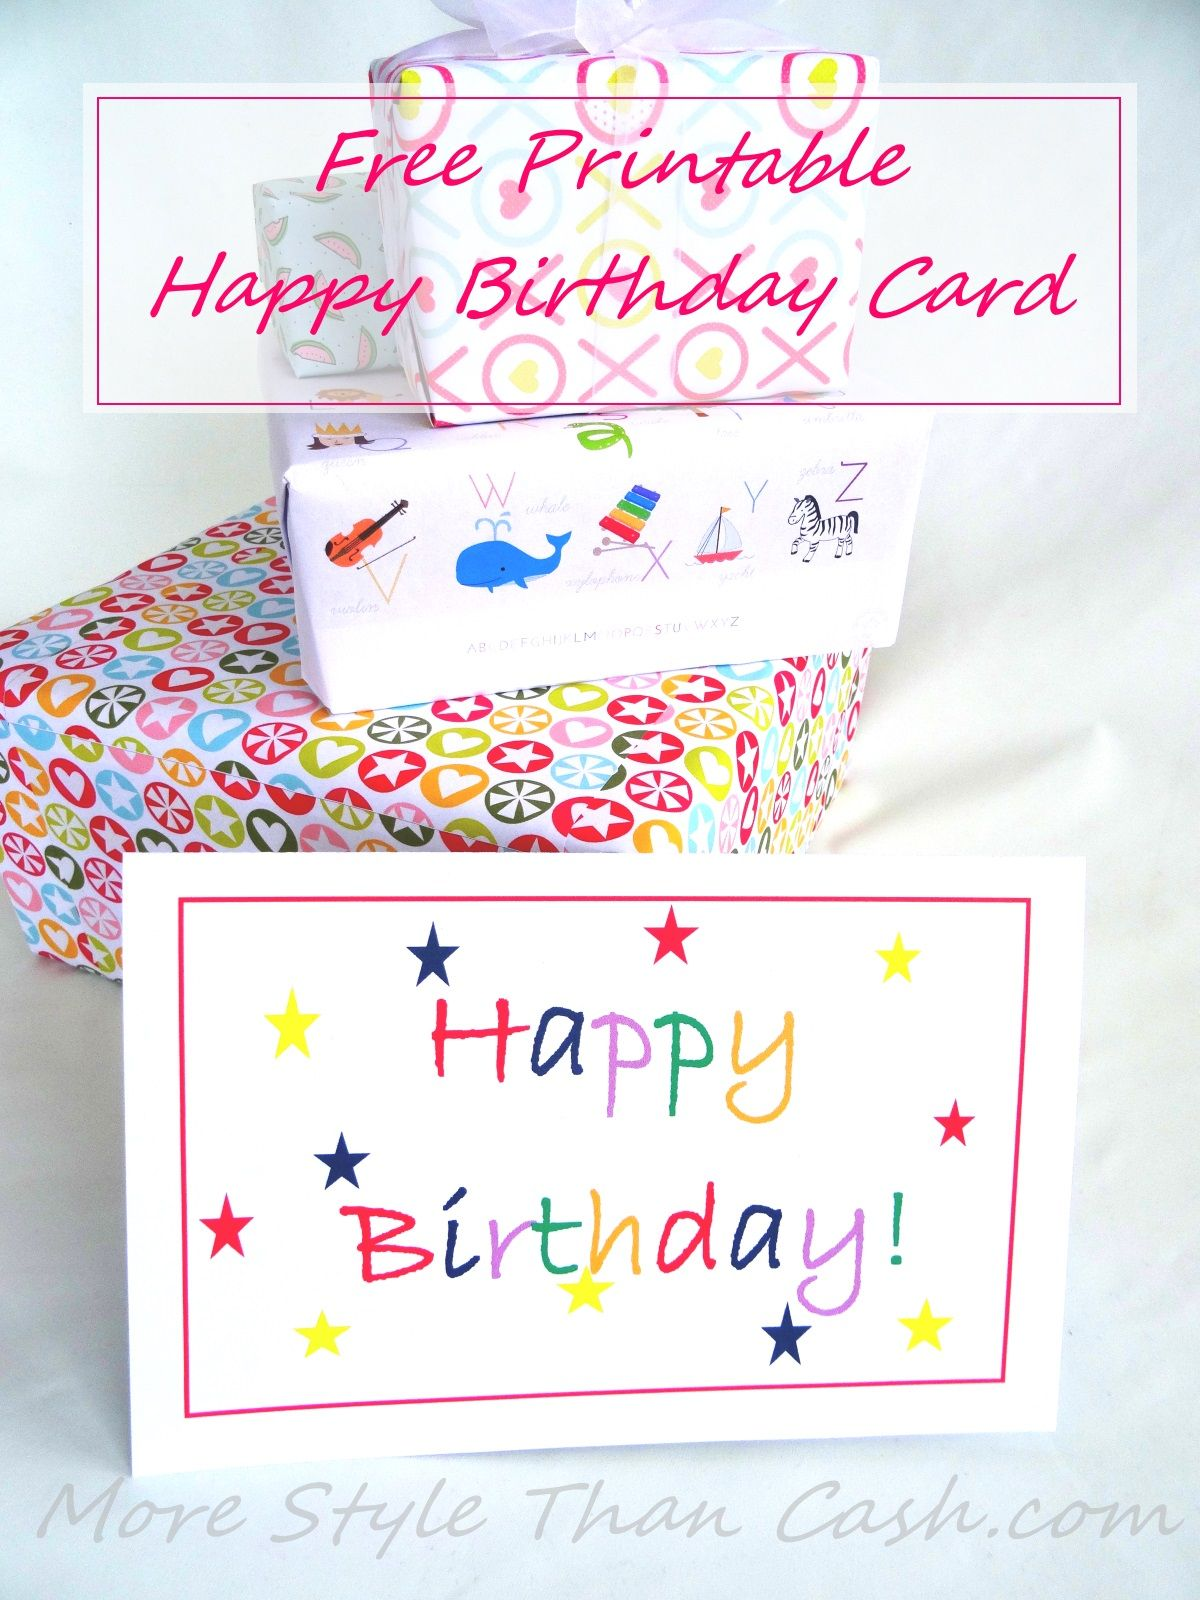 Free Printable Happy Birthday Card That Is Bright And Cheerful Appropriate For All Ages Download It Now You Stash